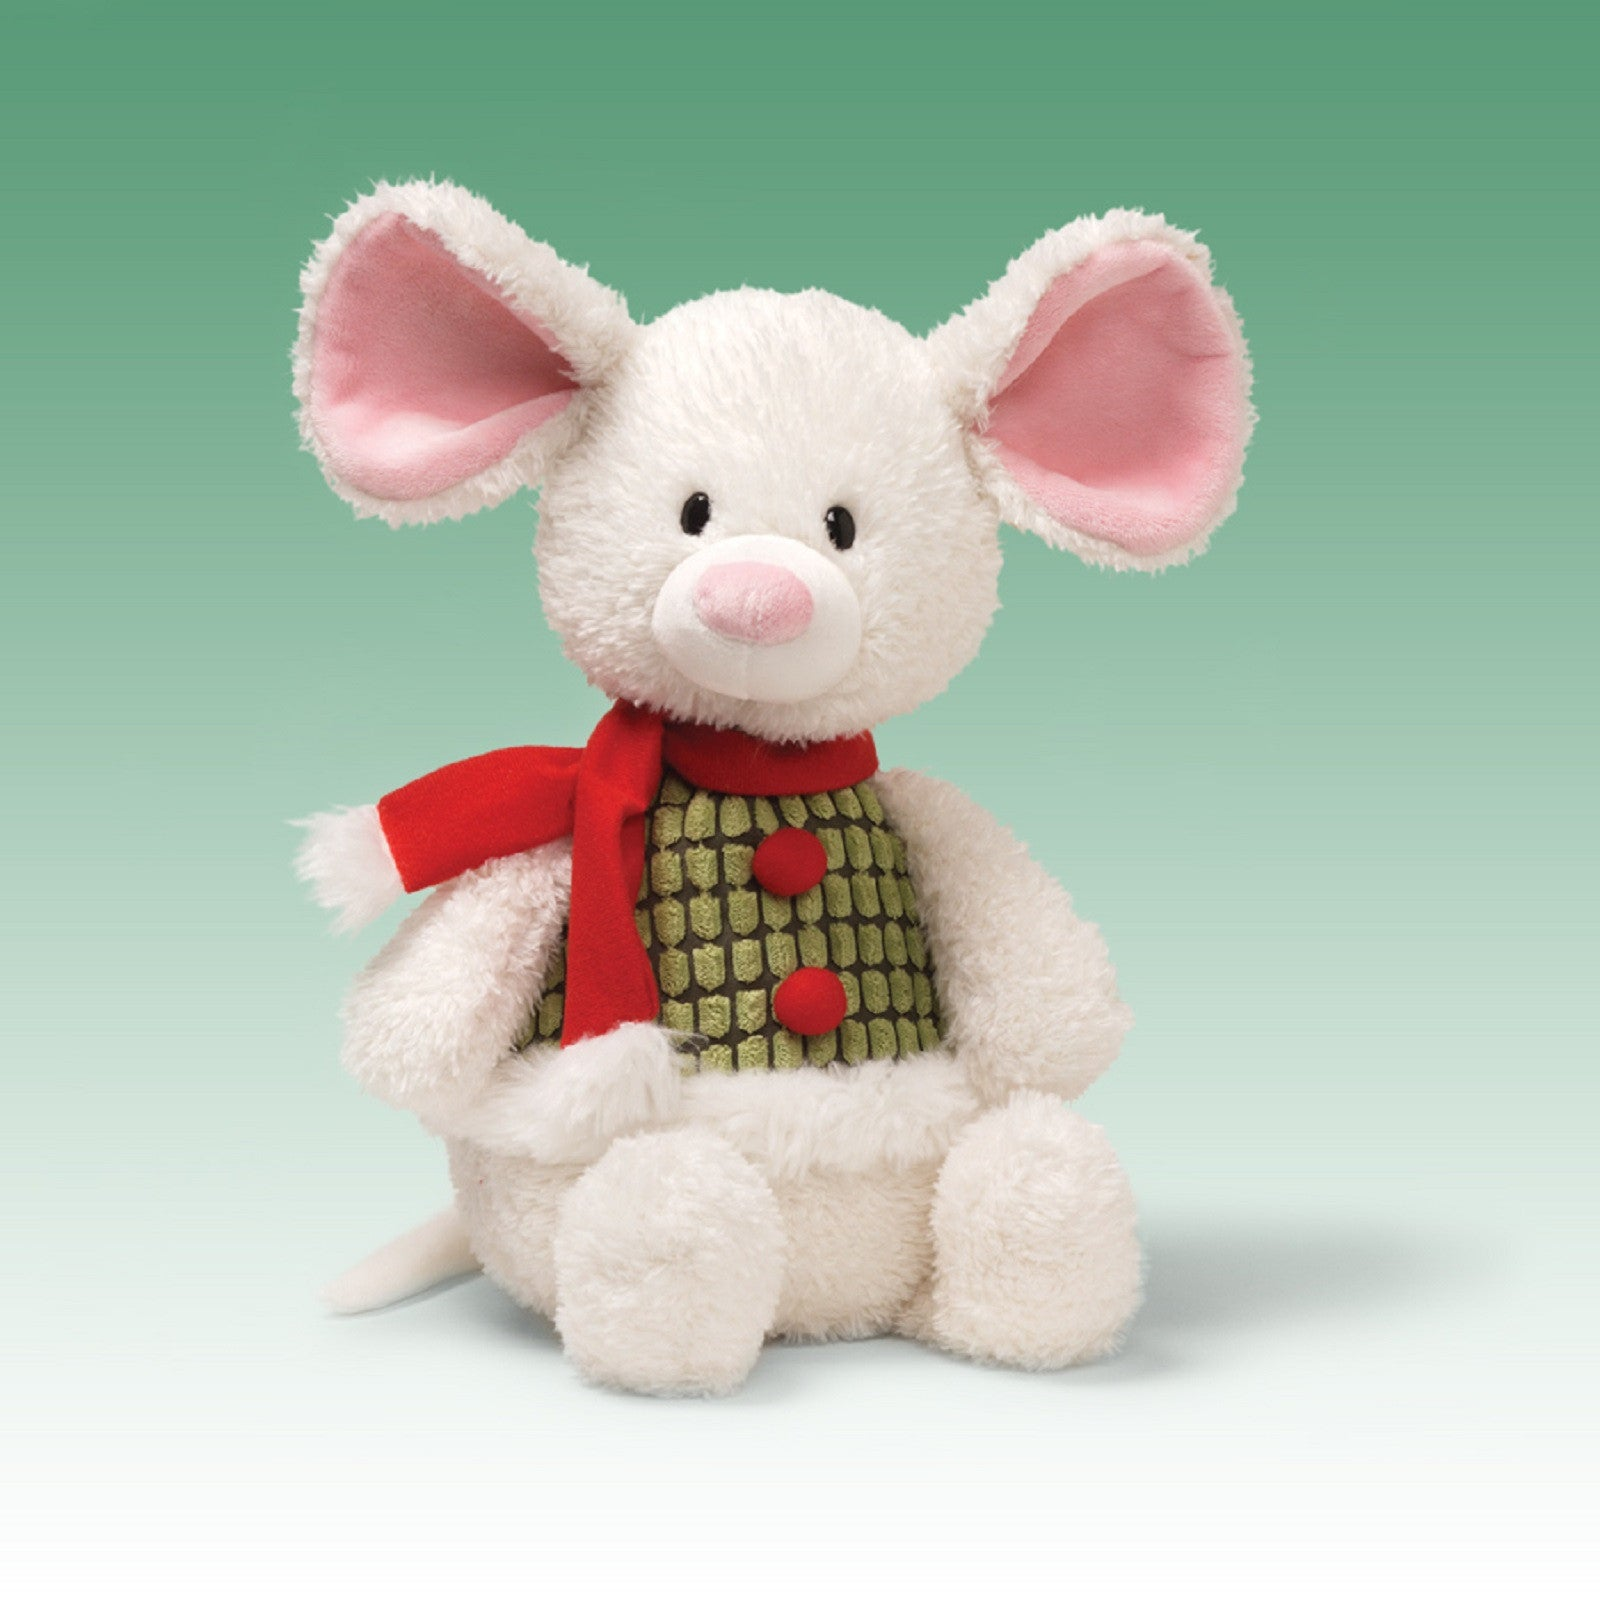 Gund - Mr. Jingles Mouse in 2 sizes